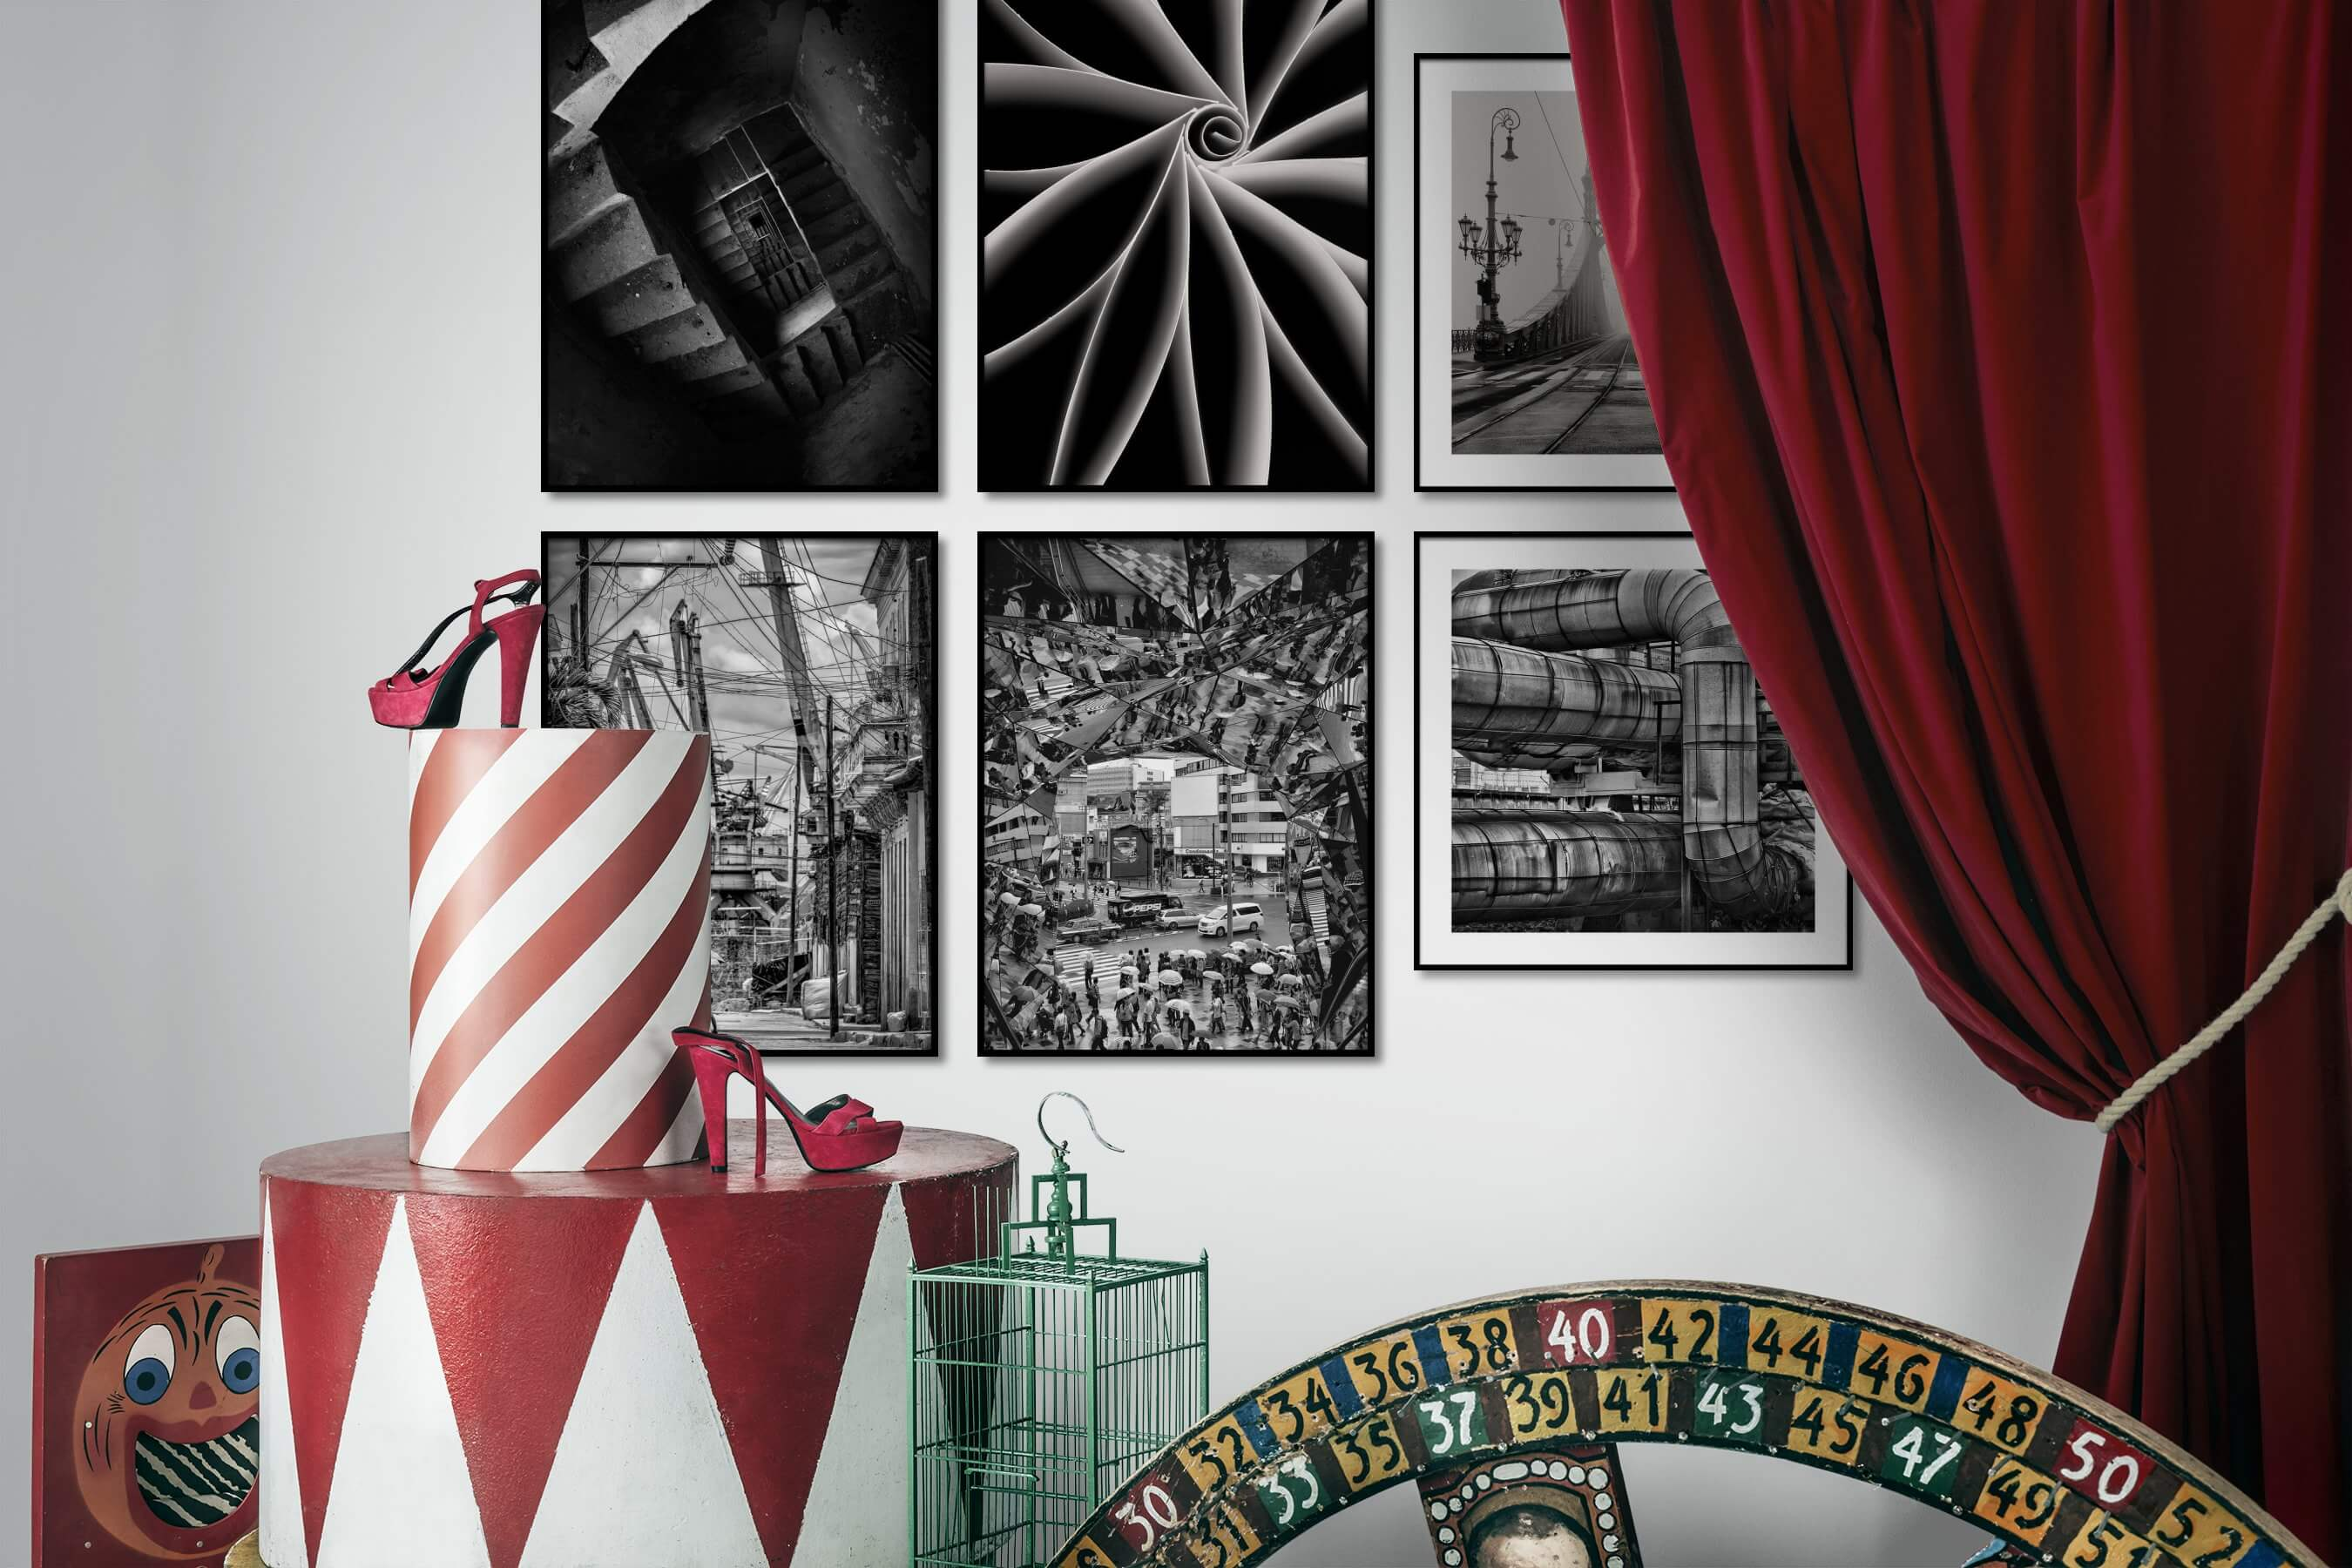 Gallery wall idea with six framed pictures arranged on a wall depicting Black & White, For the Moderate, For the Maximalist, City Life, and Vintage